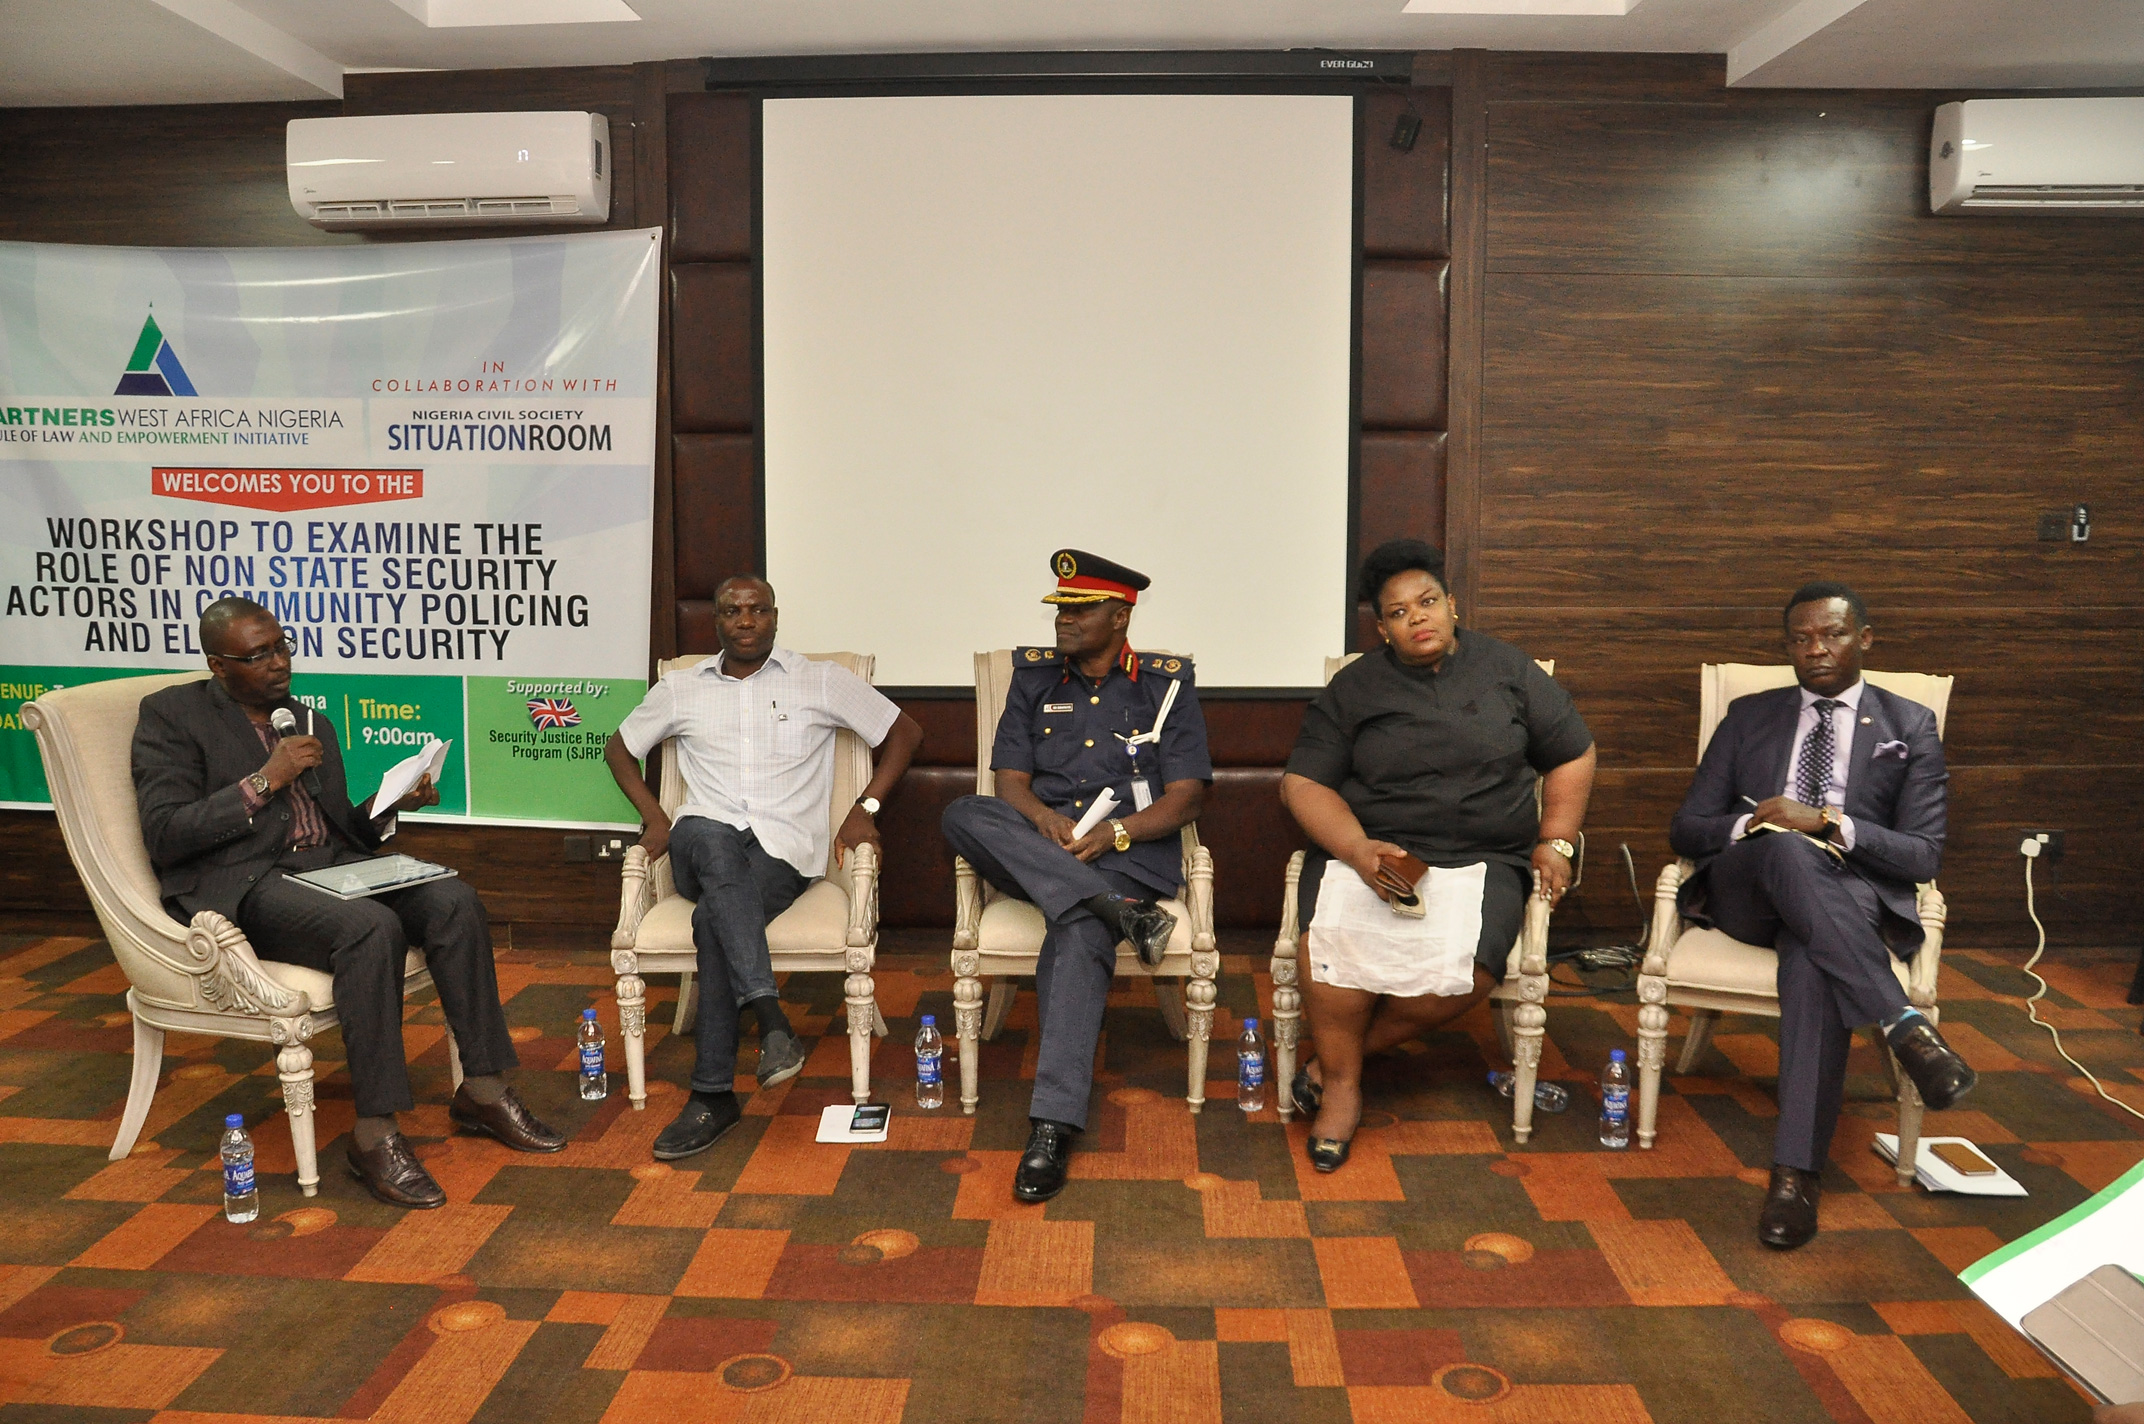 WORKSHOP ON THE ROLE OF NON STATE SECURITY ACTORS IN COMMUNITY POLICING AND ELECTION SECURITY